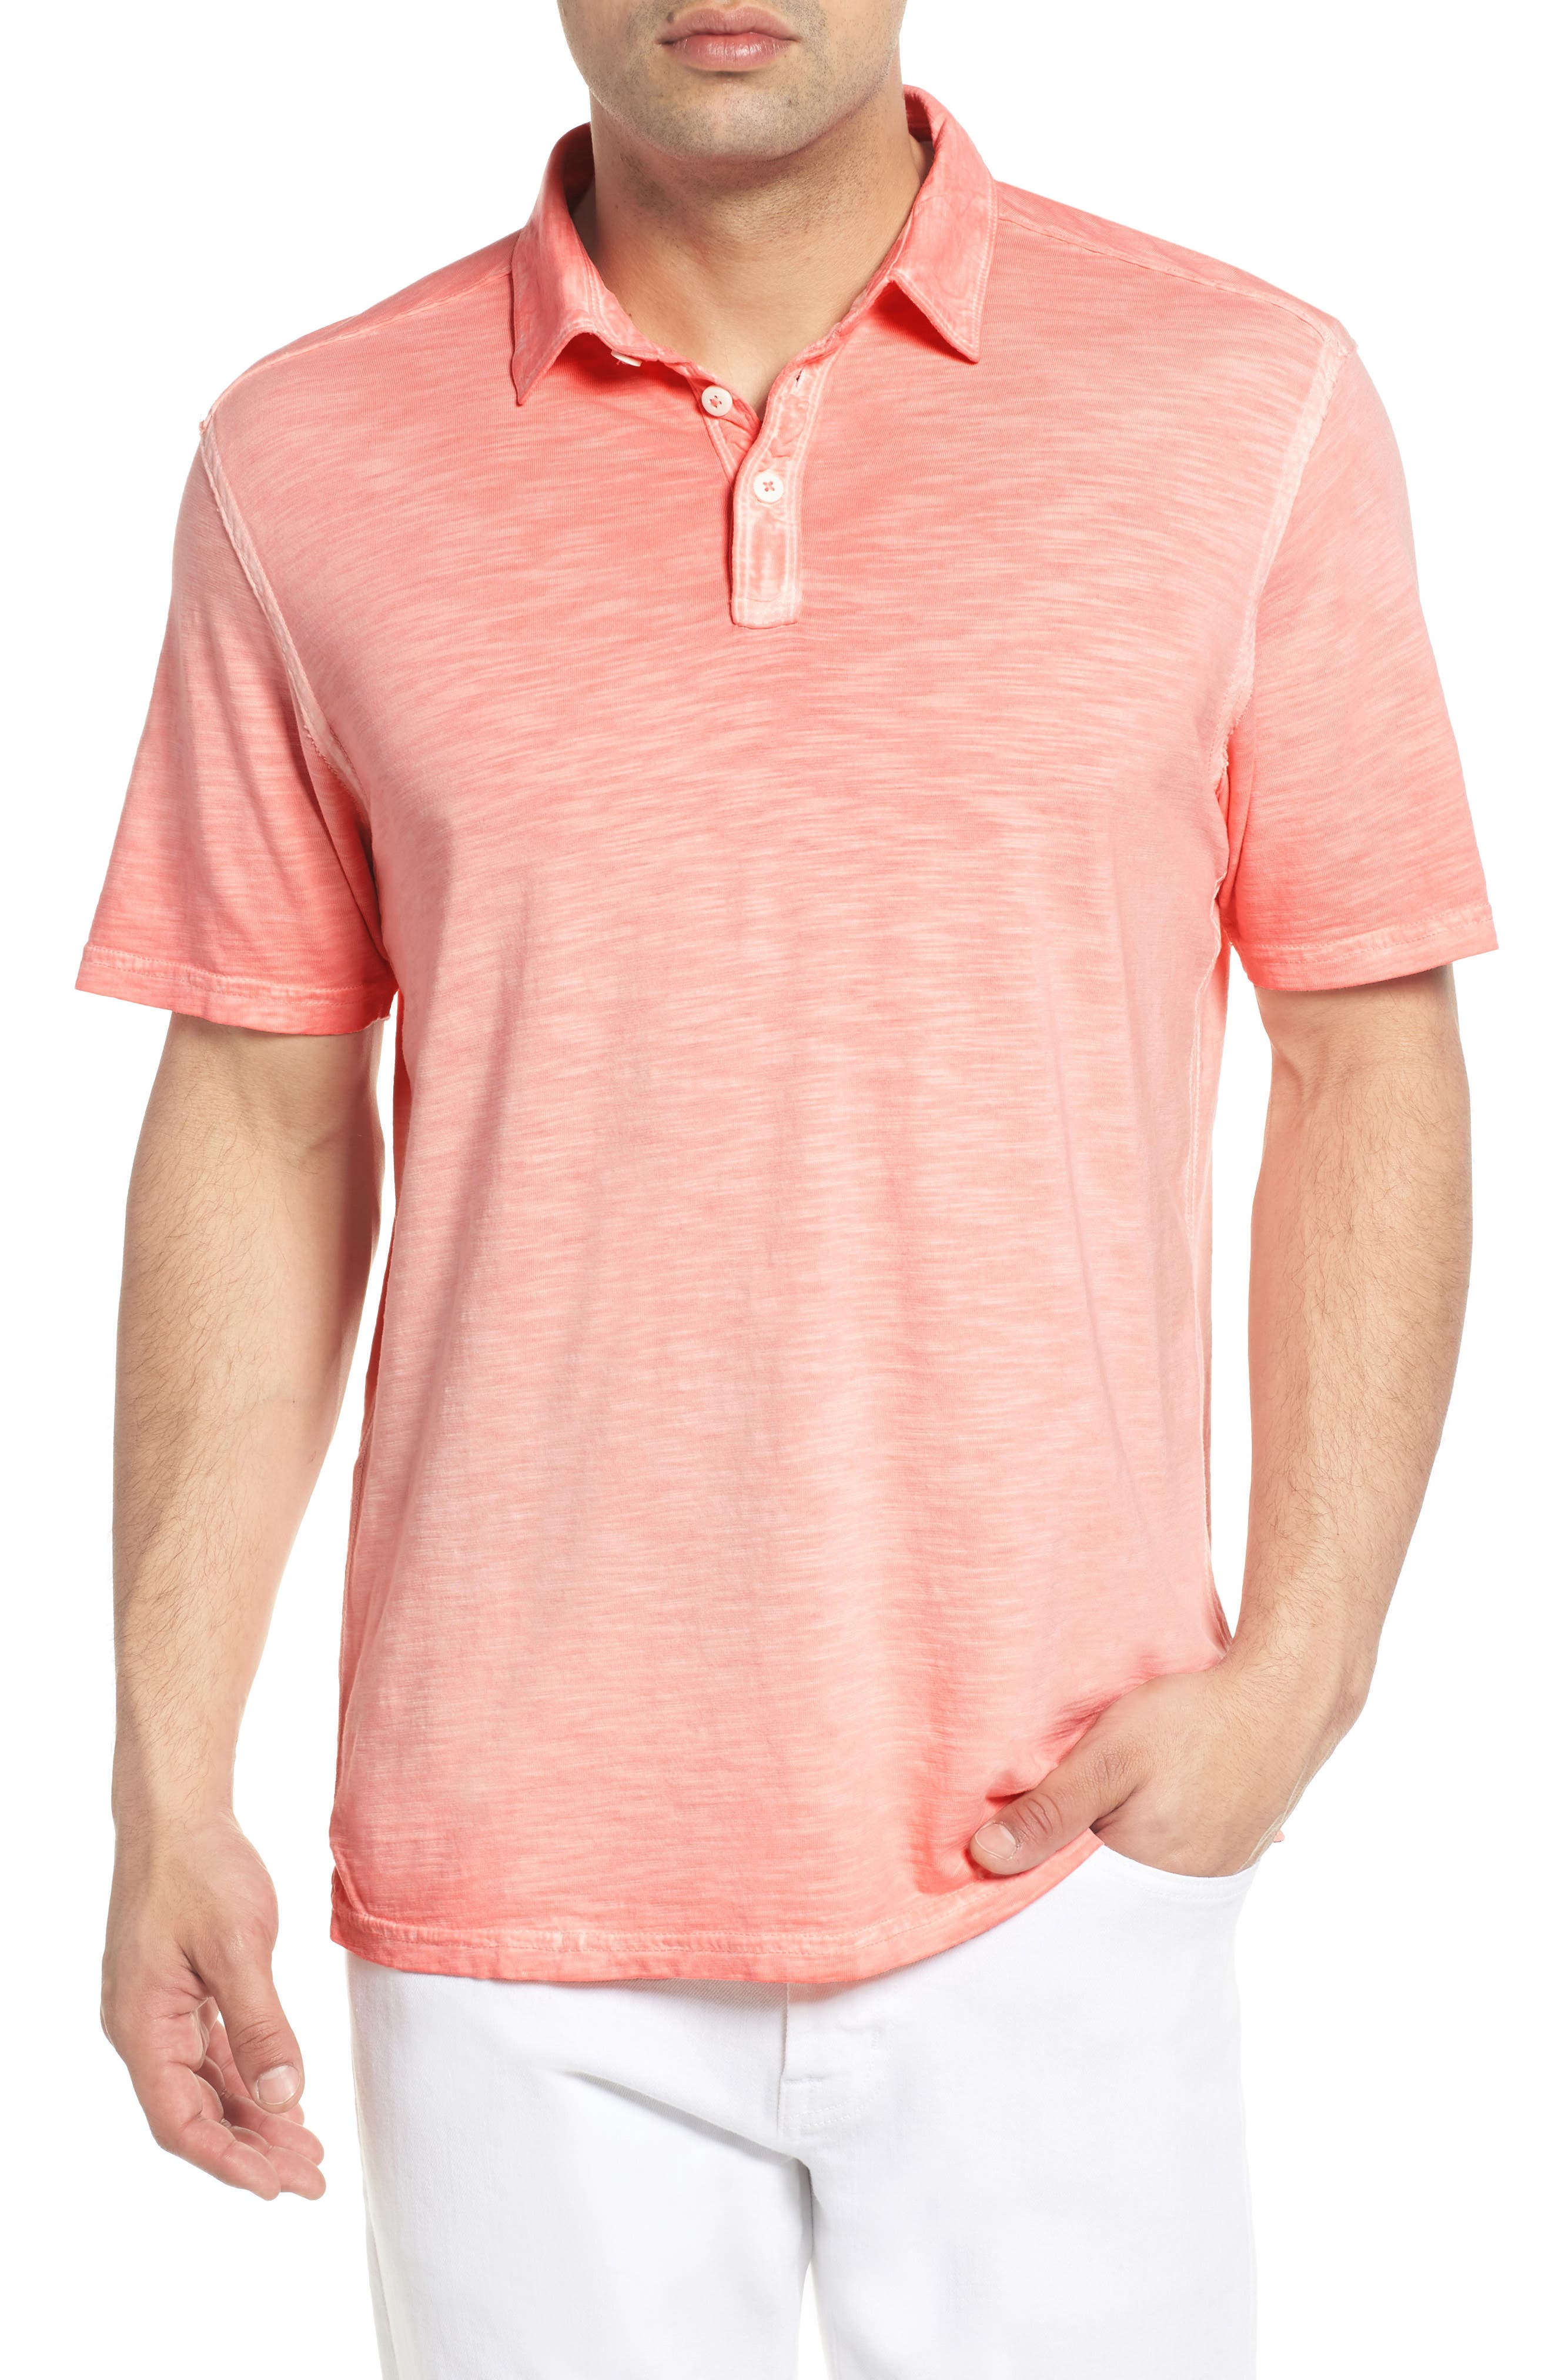 Suncoast Shores Slub Jersey Polo,                             Main thumbnail 1, color,                             Electric Coral